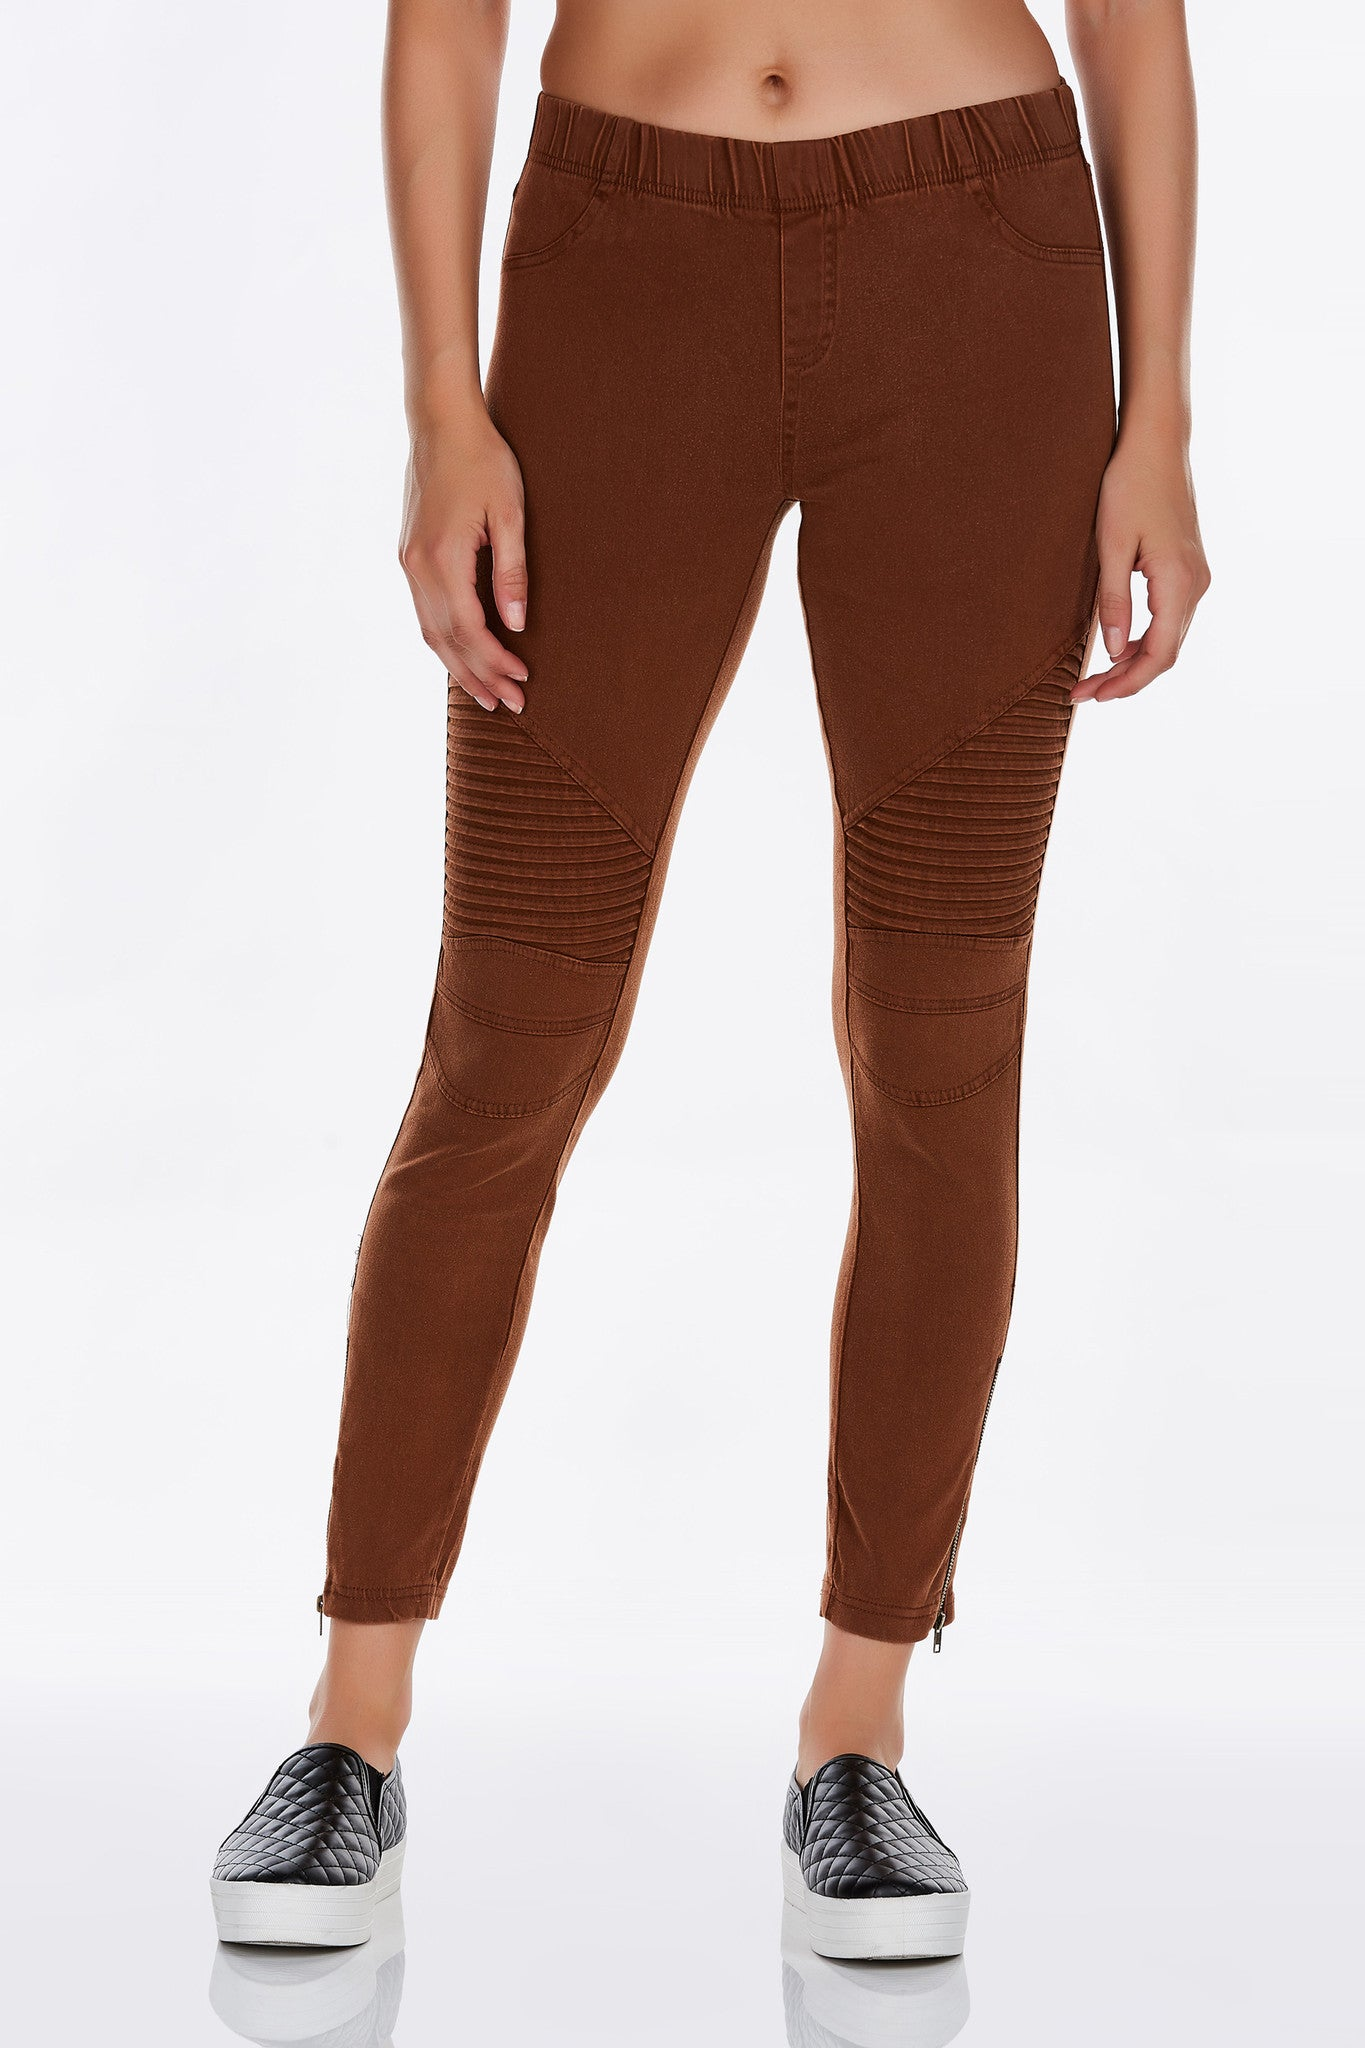 An awesome pair of jeggings that you'll want in every color. These jeggings have a comfortable and stretchy fit. Has elastic band at waist for fit. Pair with graphic tee and sneakers! Or dress it up with pumps and a blouse.